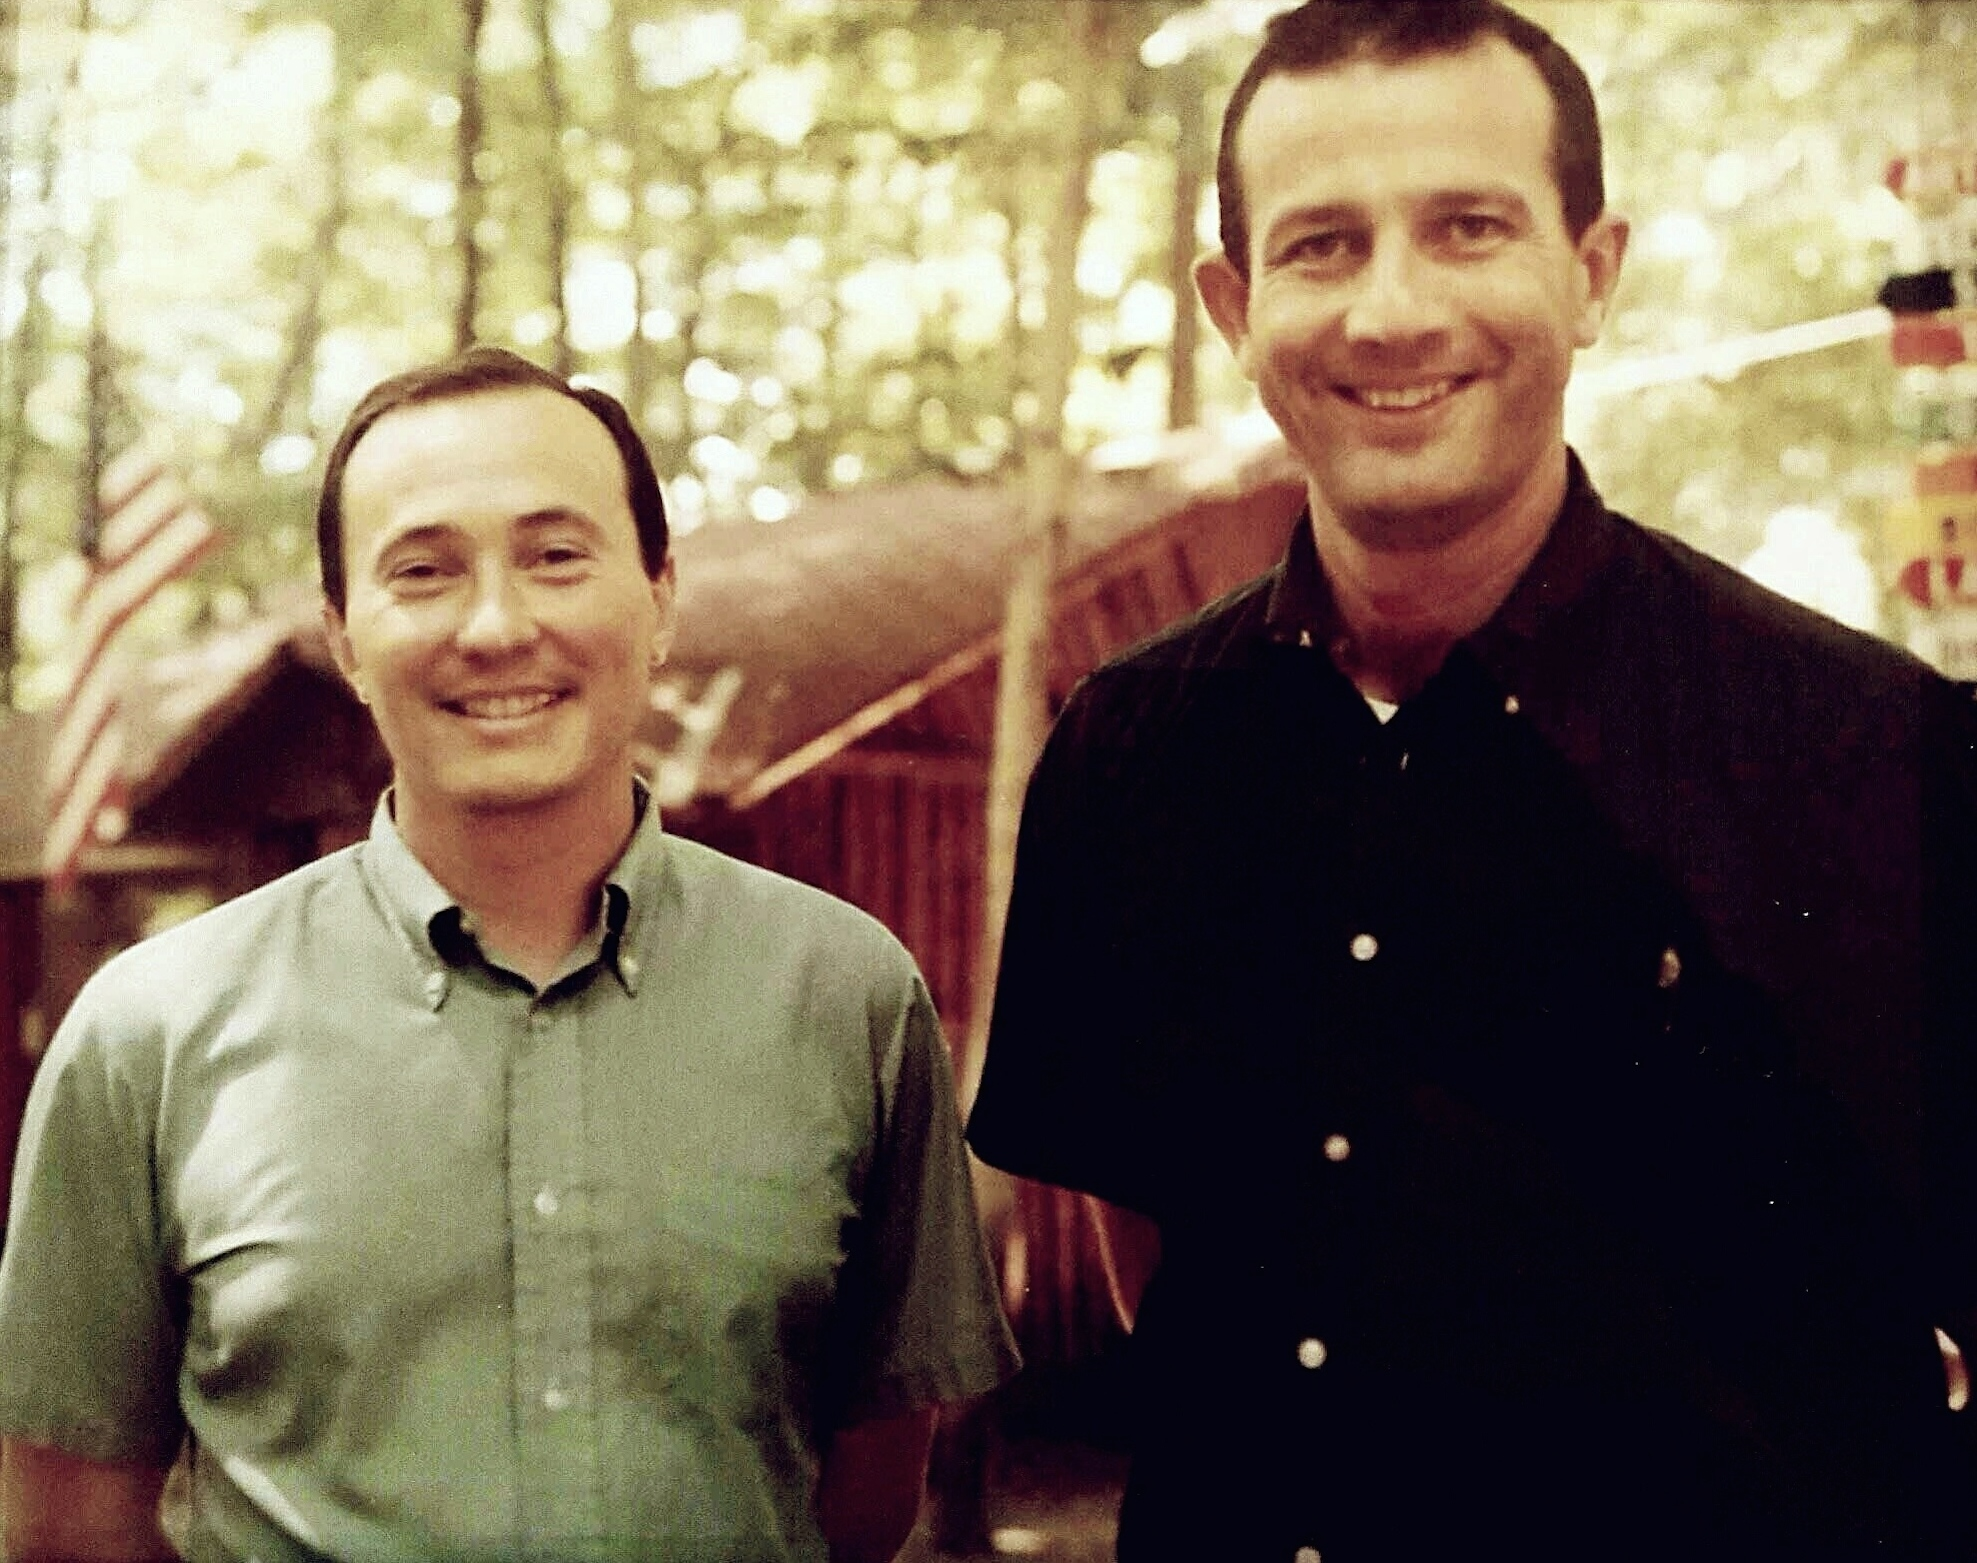 Neal Schechter (left) and Larry Stevens, co-founders of Camp Walden in Cheboygan, Mich., are pictured here at the camp during its inaugural season in 1960. Credit: Courtesy of Liz Stevens.